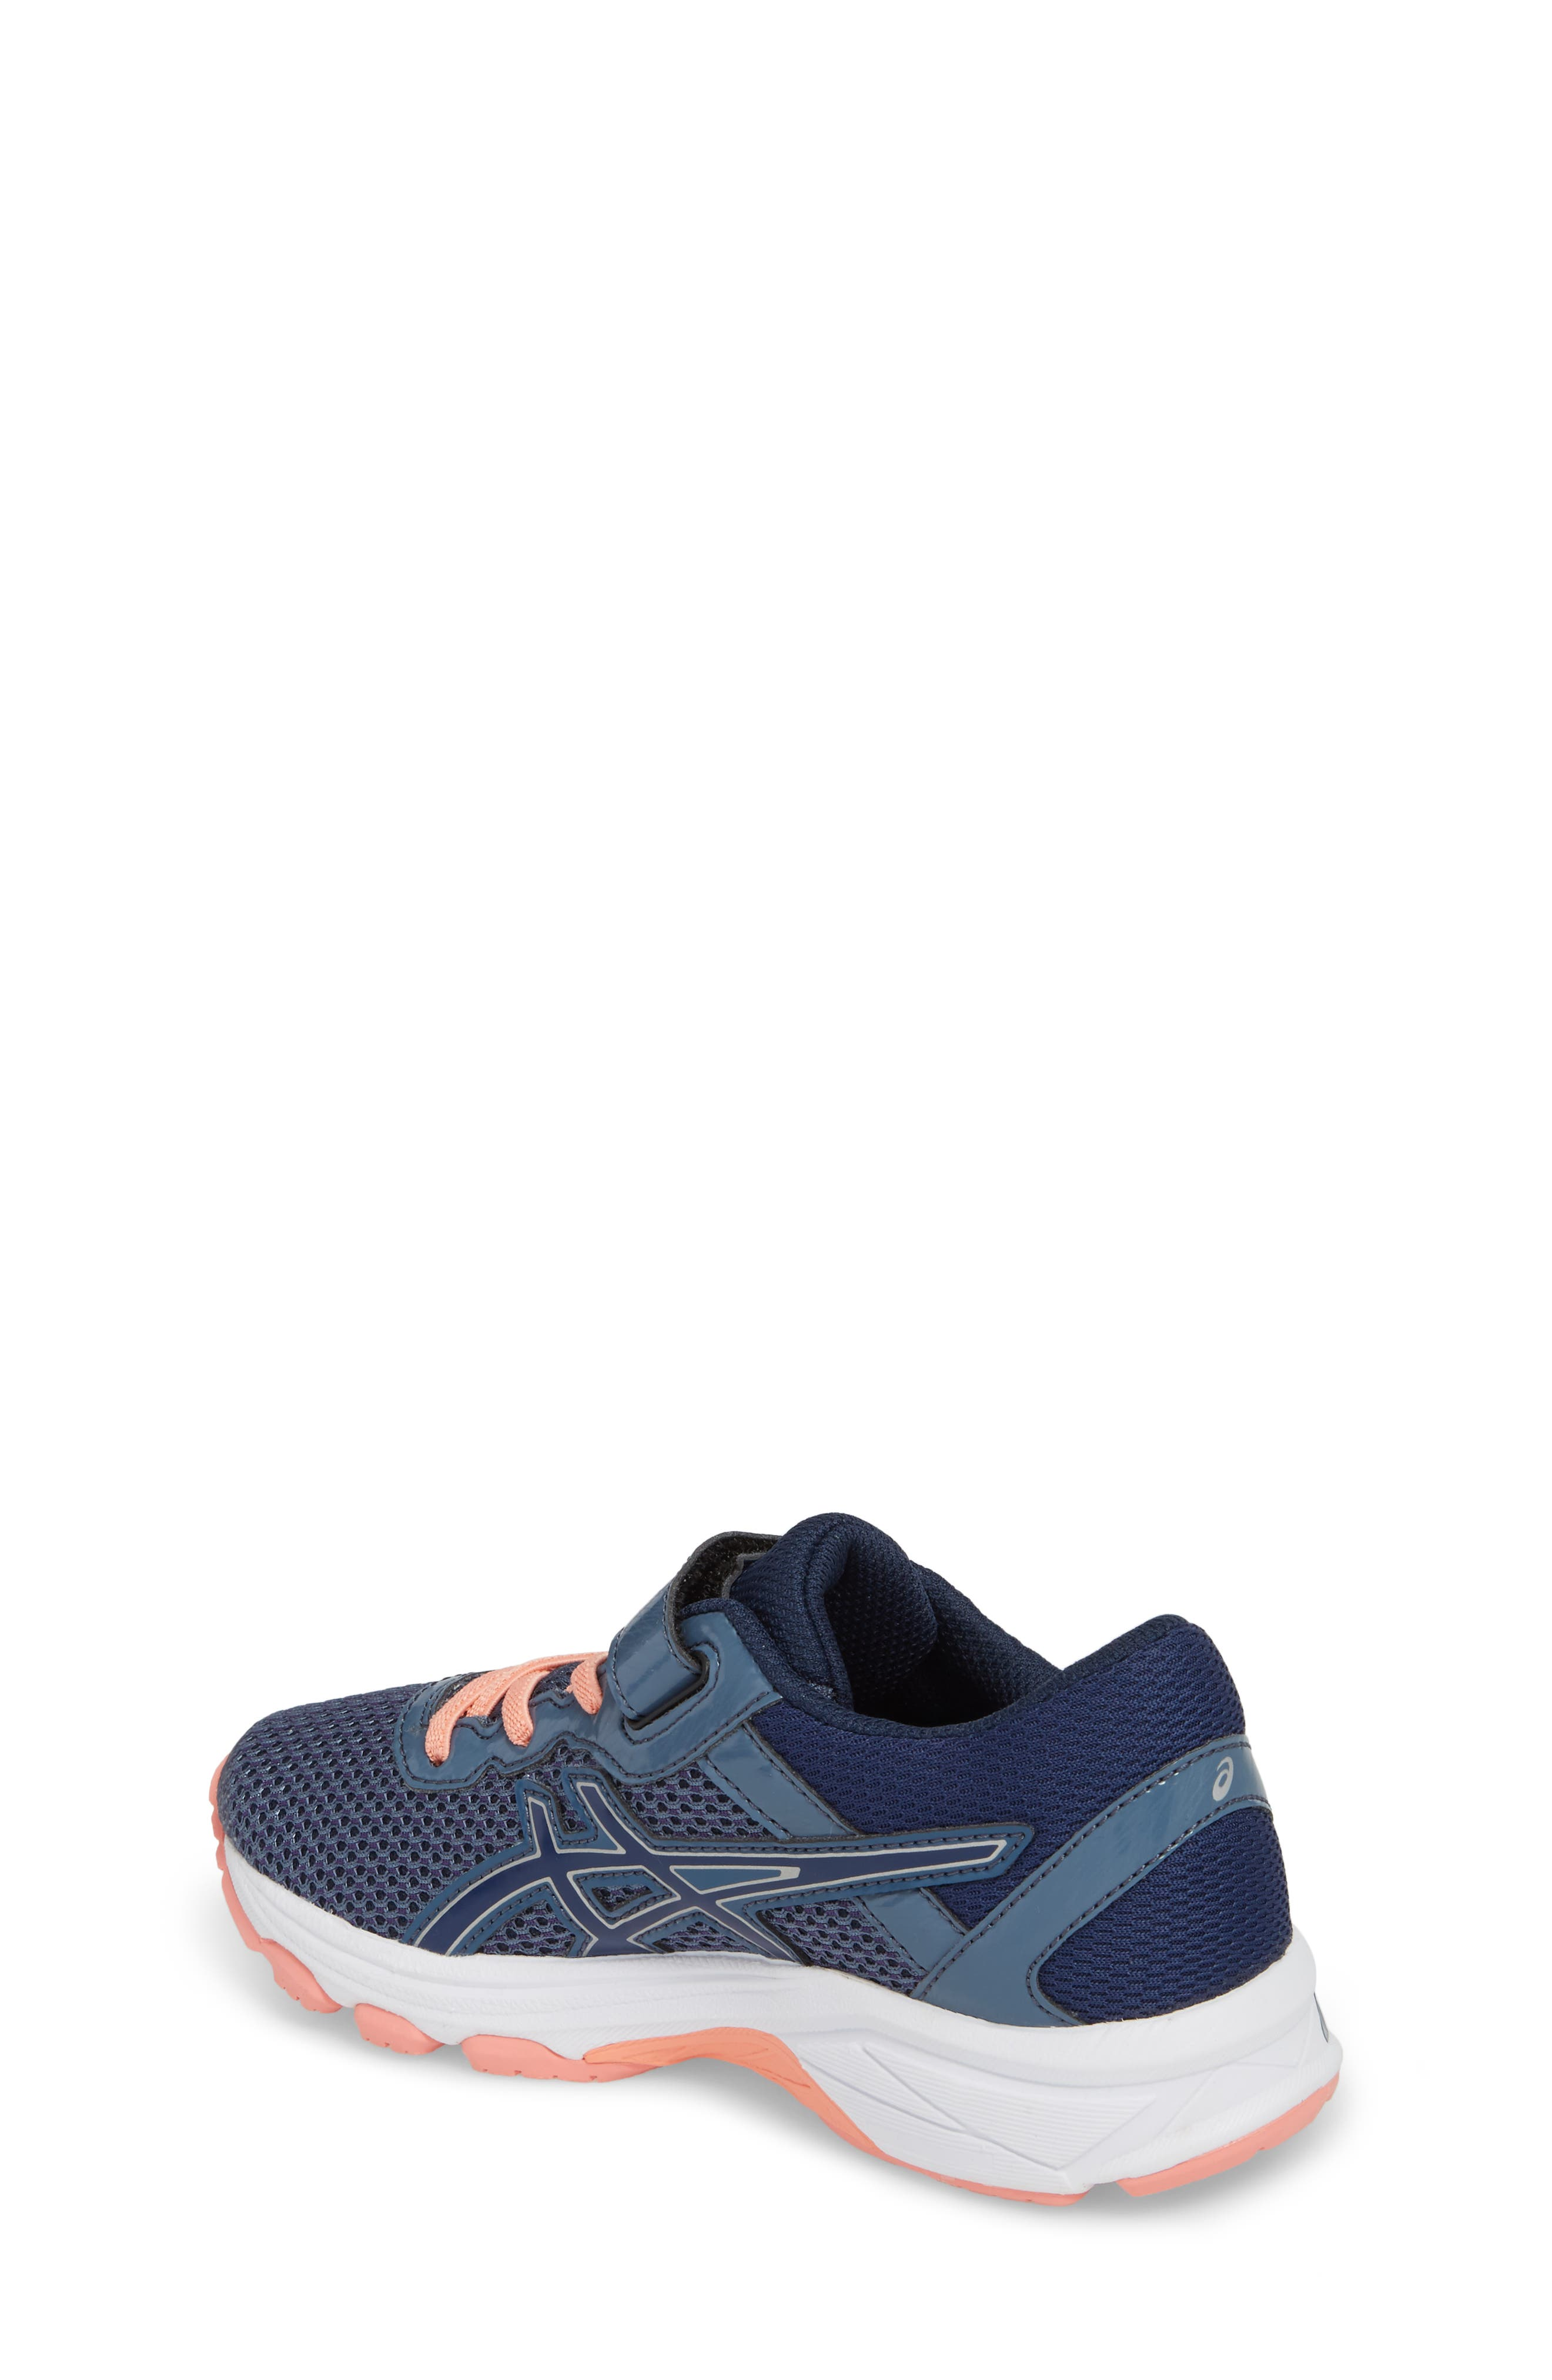 Asics GT-1000<sup>™</sup> 6 PS Sneaker,                             Alternate thumbnail 7, color,